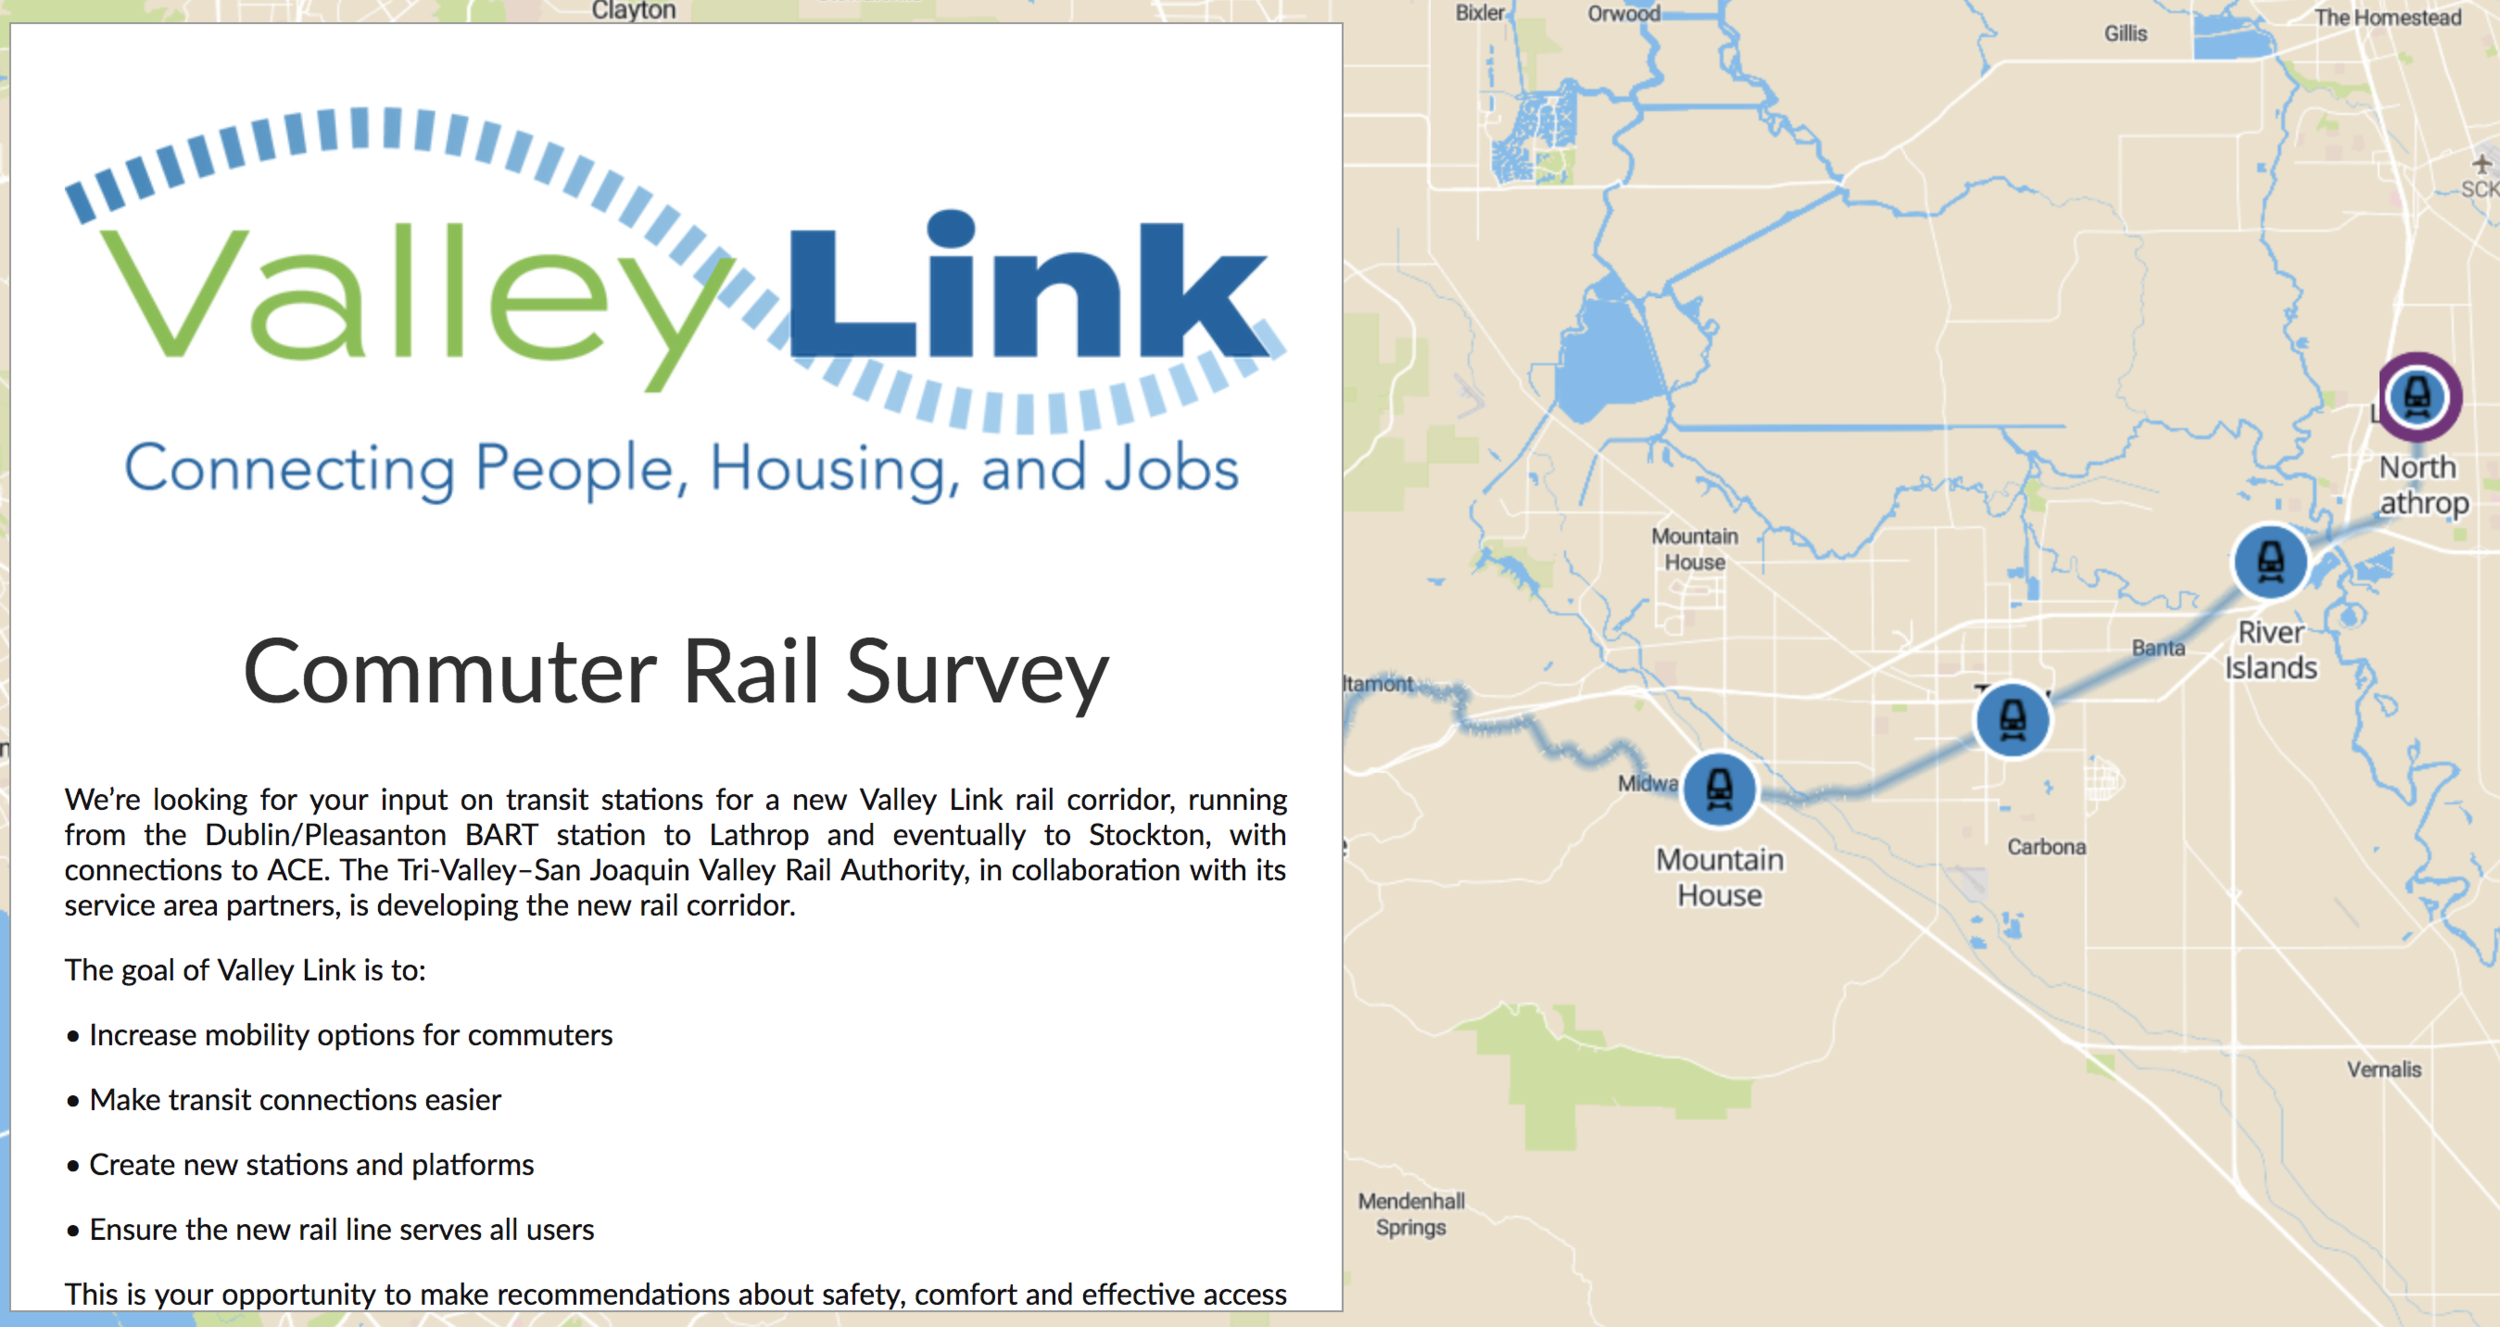 The Valley Link rail corridor development was supported by a visual survey. In the survey they used a customized background map that replicates a conceptual map of the commuter rail network.